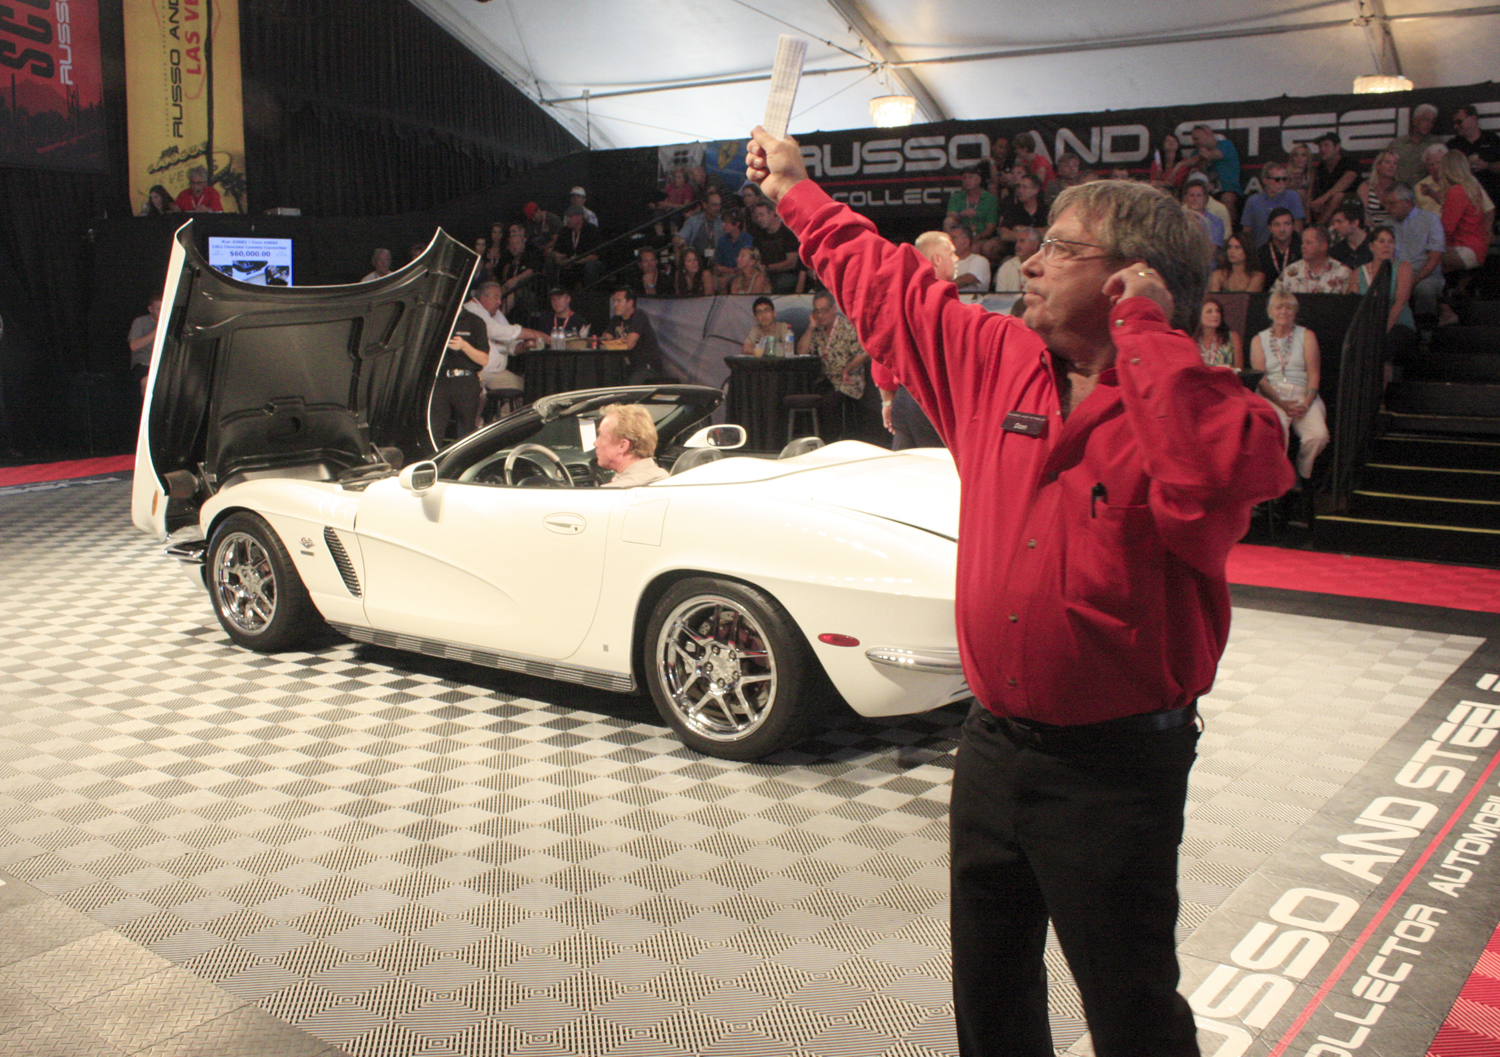 Newport Beach Local News Biz Buzz: Russo and Steele Auto Auction ...